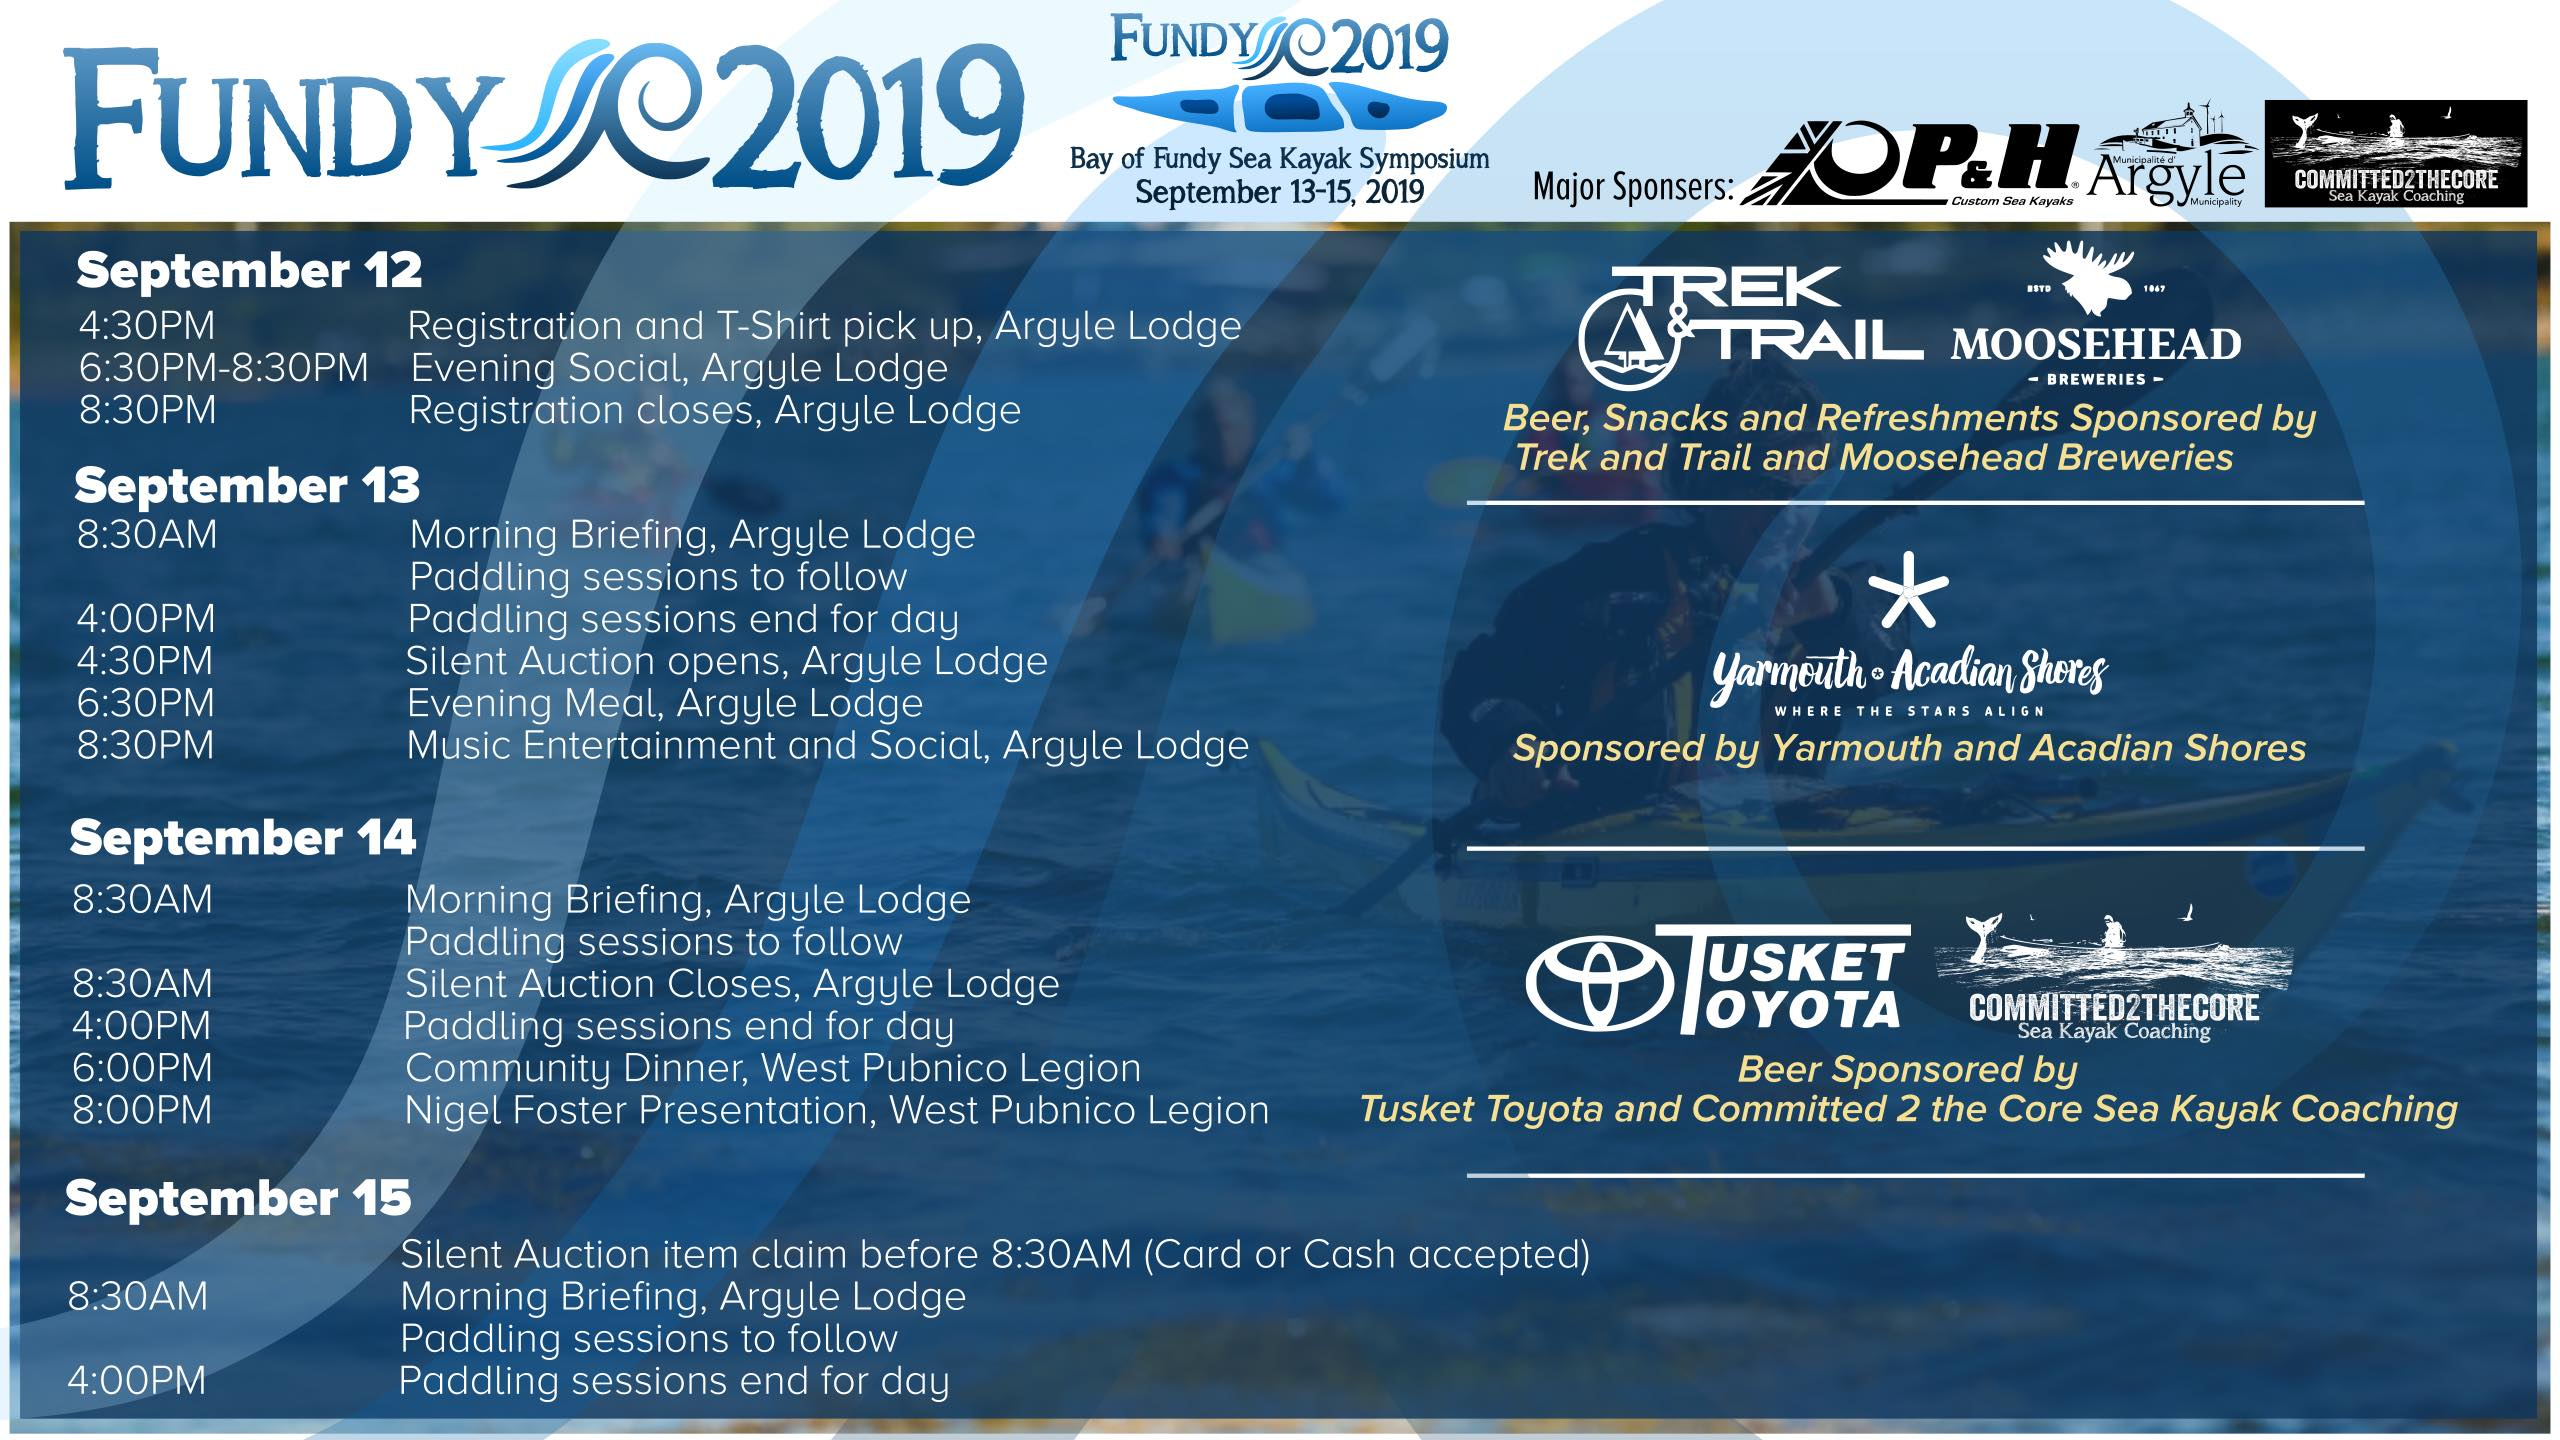 Bay of Fundy Sea Kayak Symposium – Session Assignment